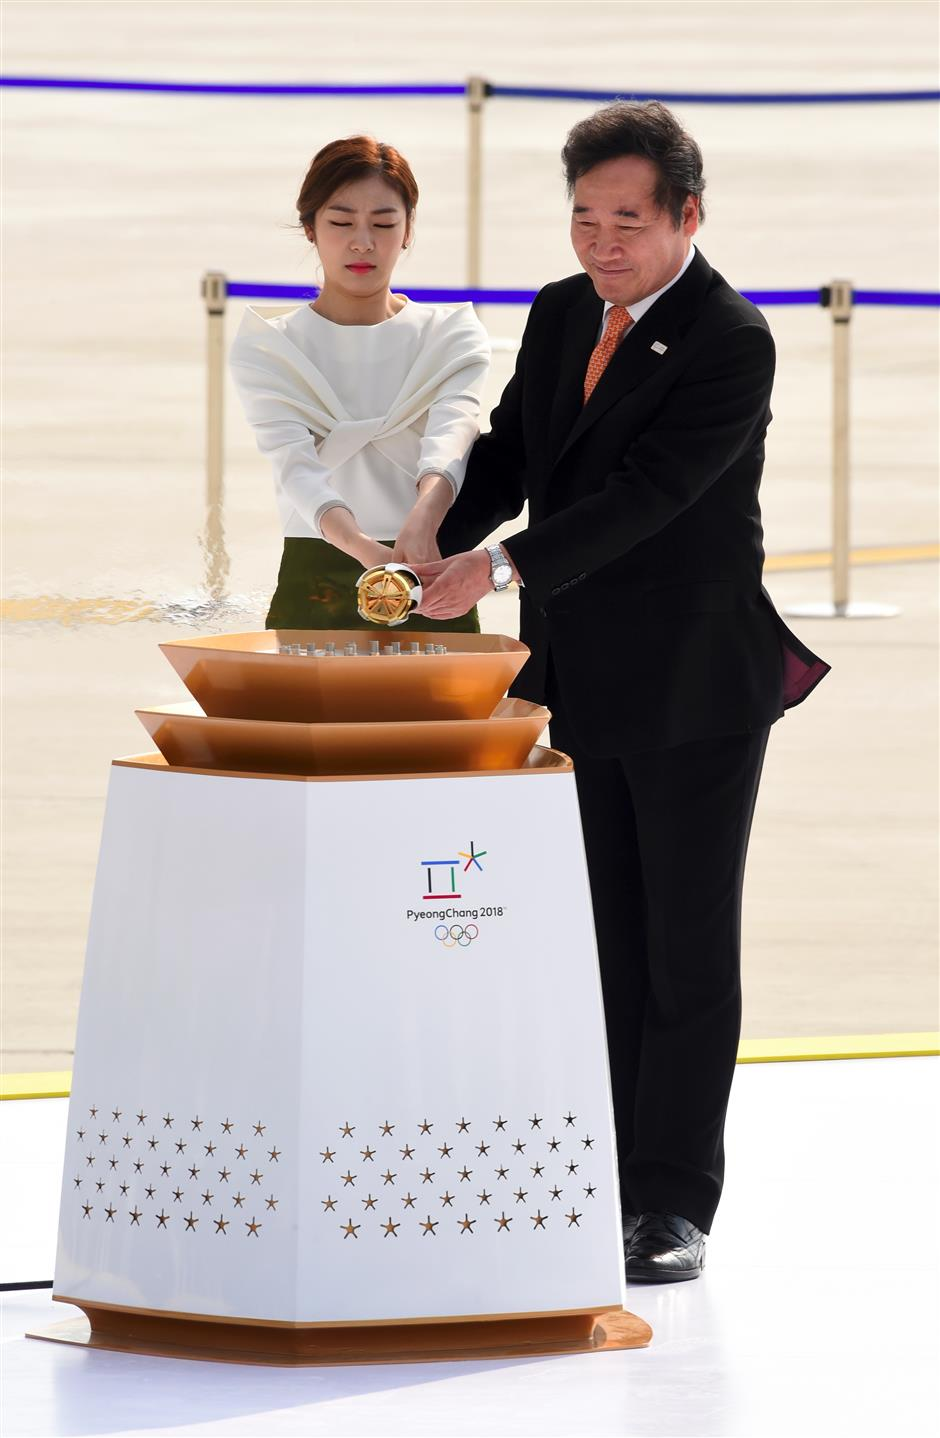 Flame arrives to ignite Pyeongchang's story of fire and ice